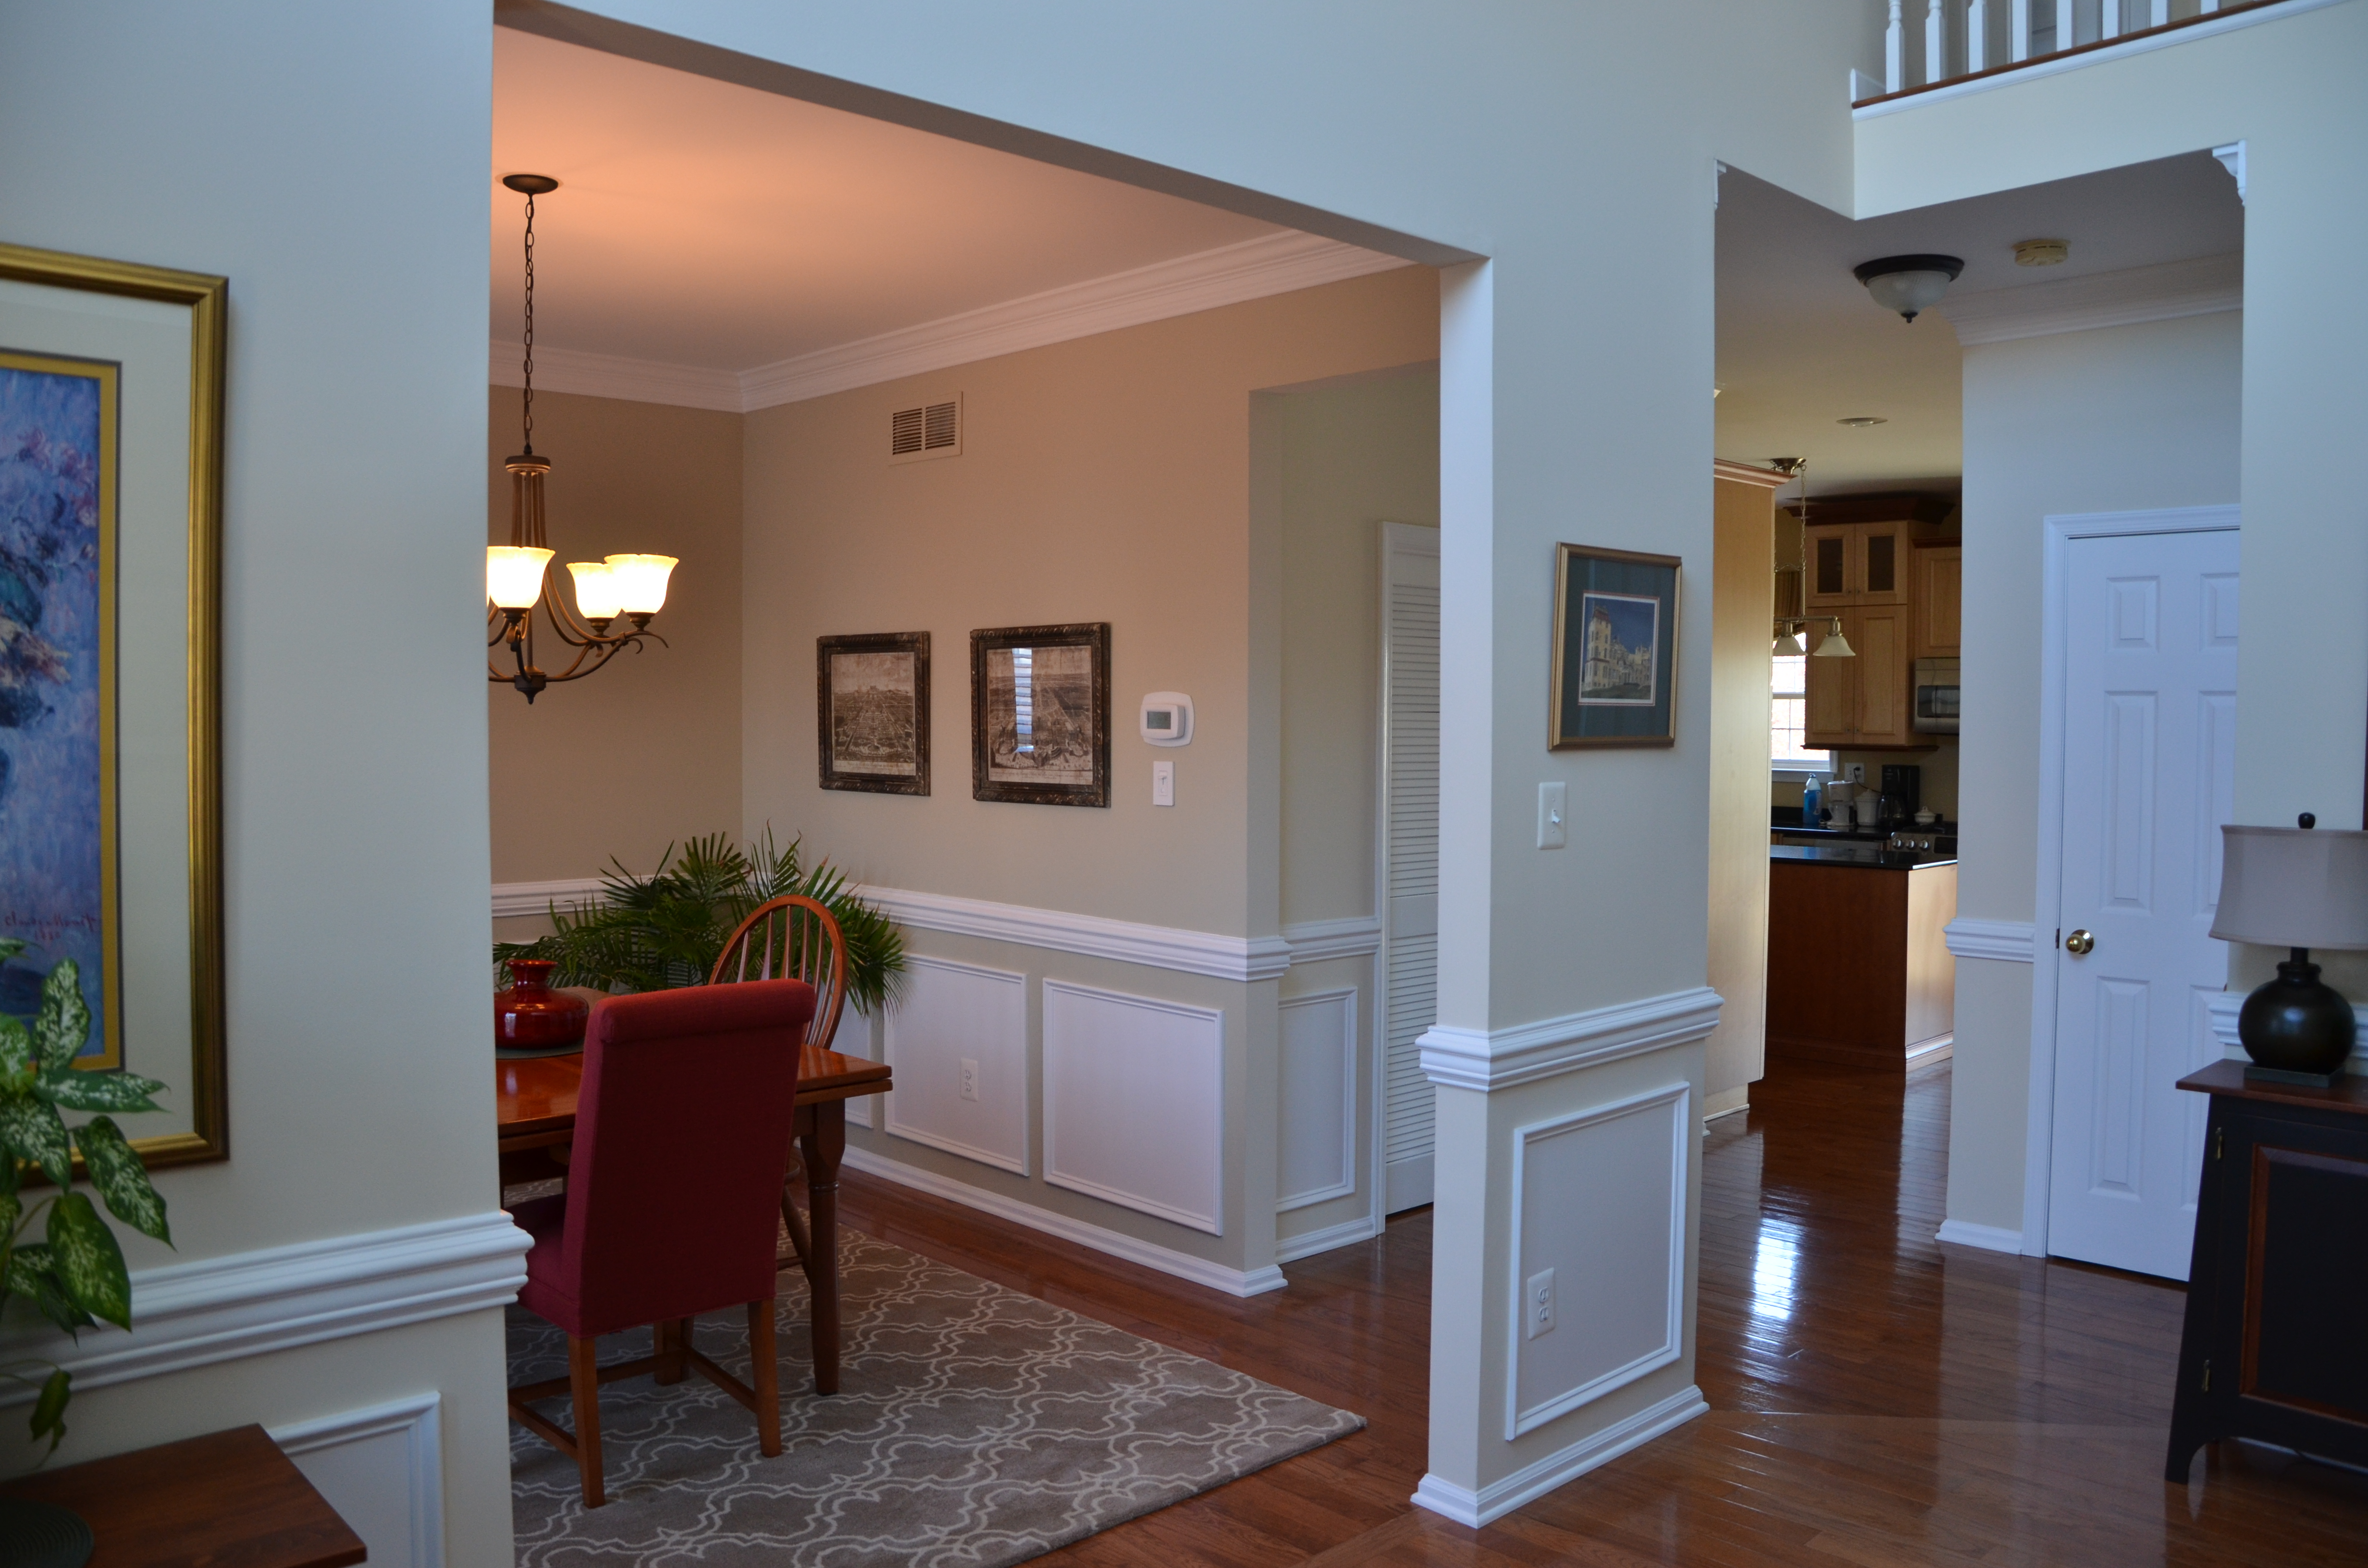 View from Foyer to Kitchen. Intentional Designs, Inc. Photography by dreams come true productions.